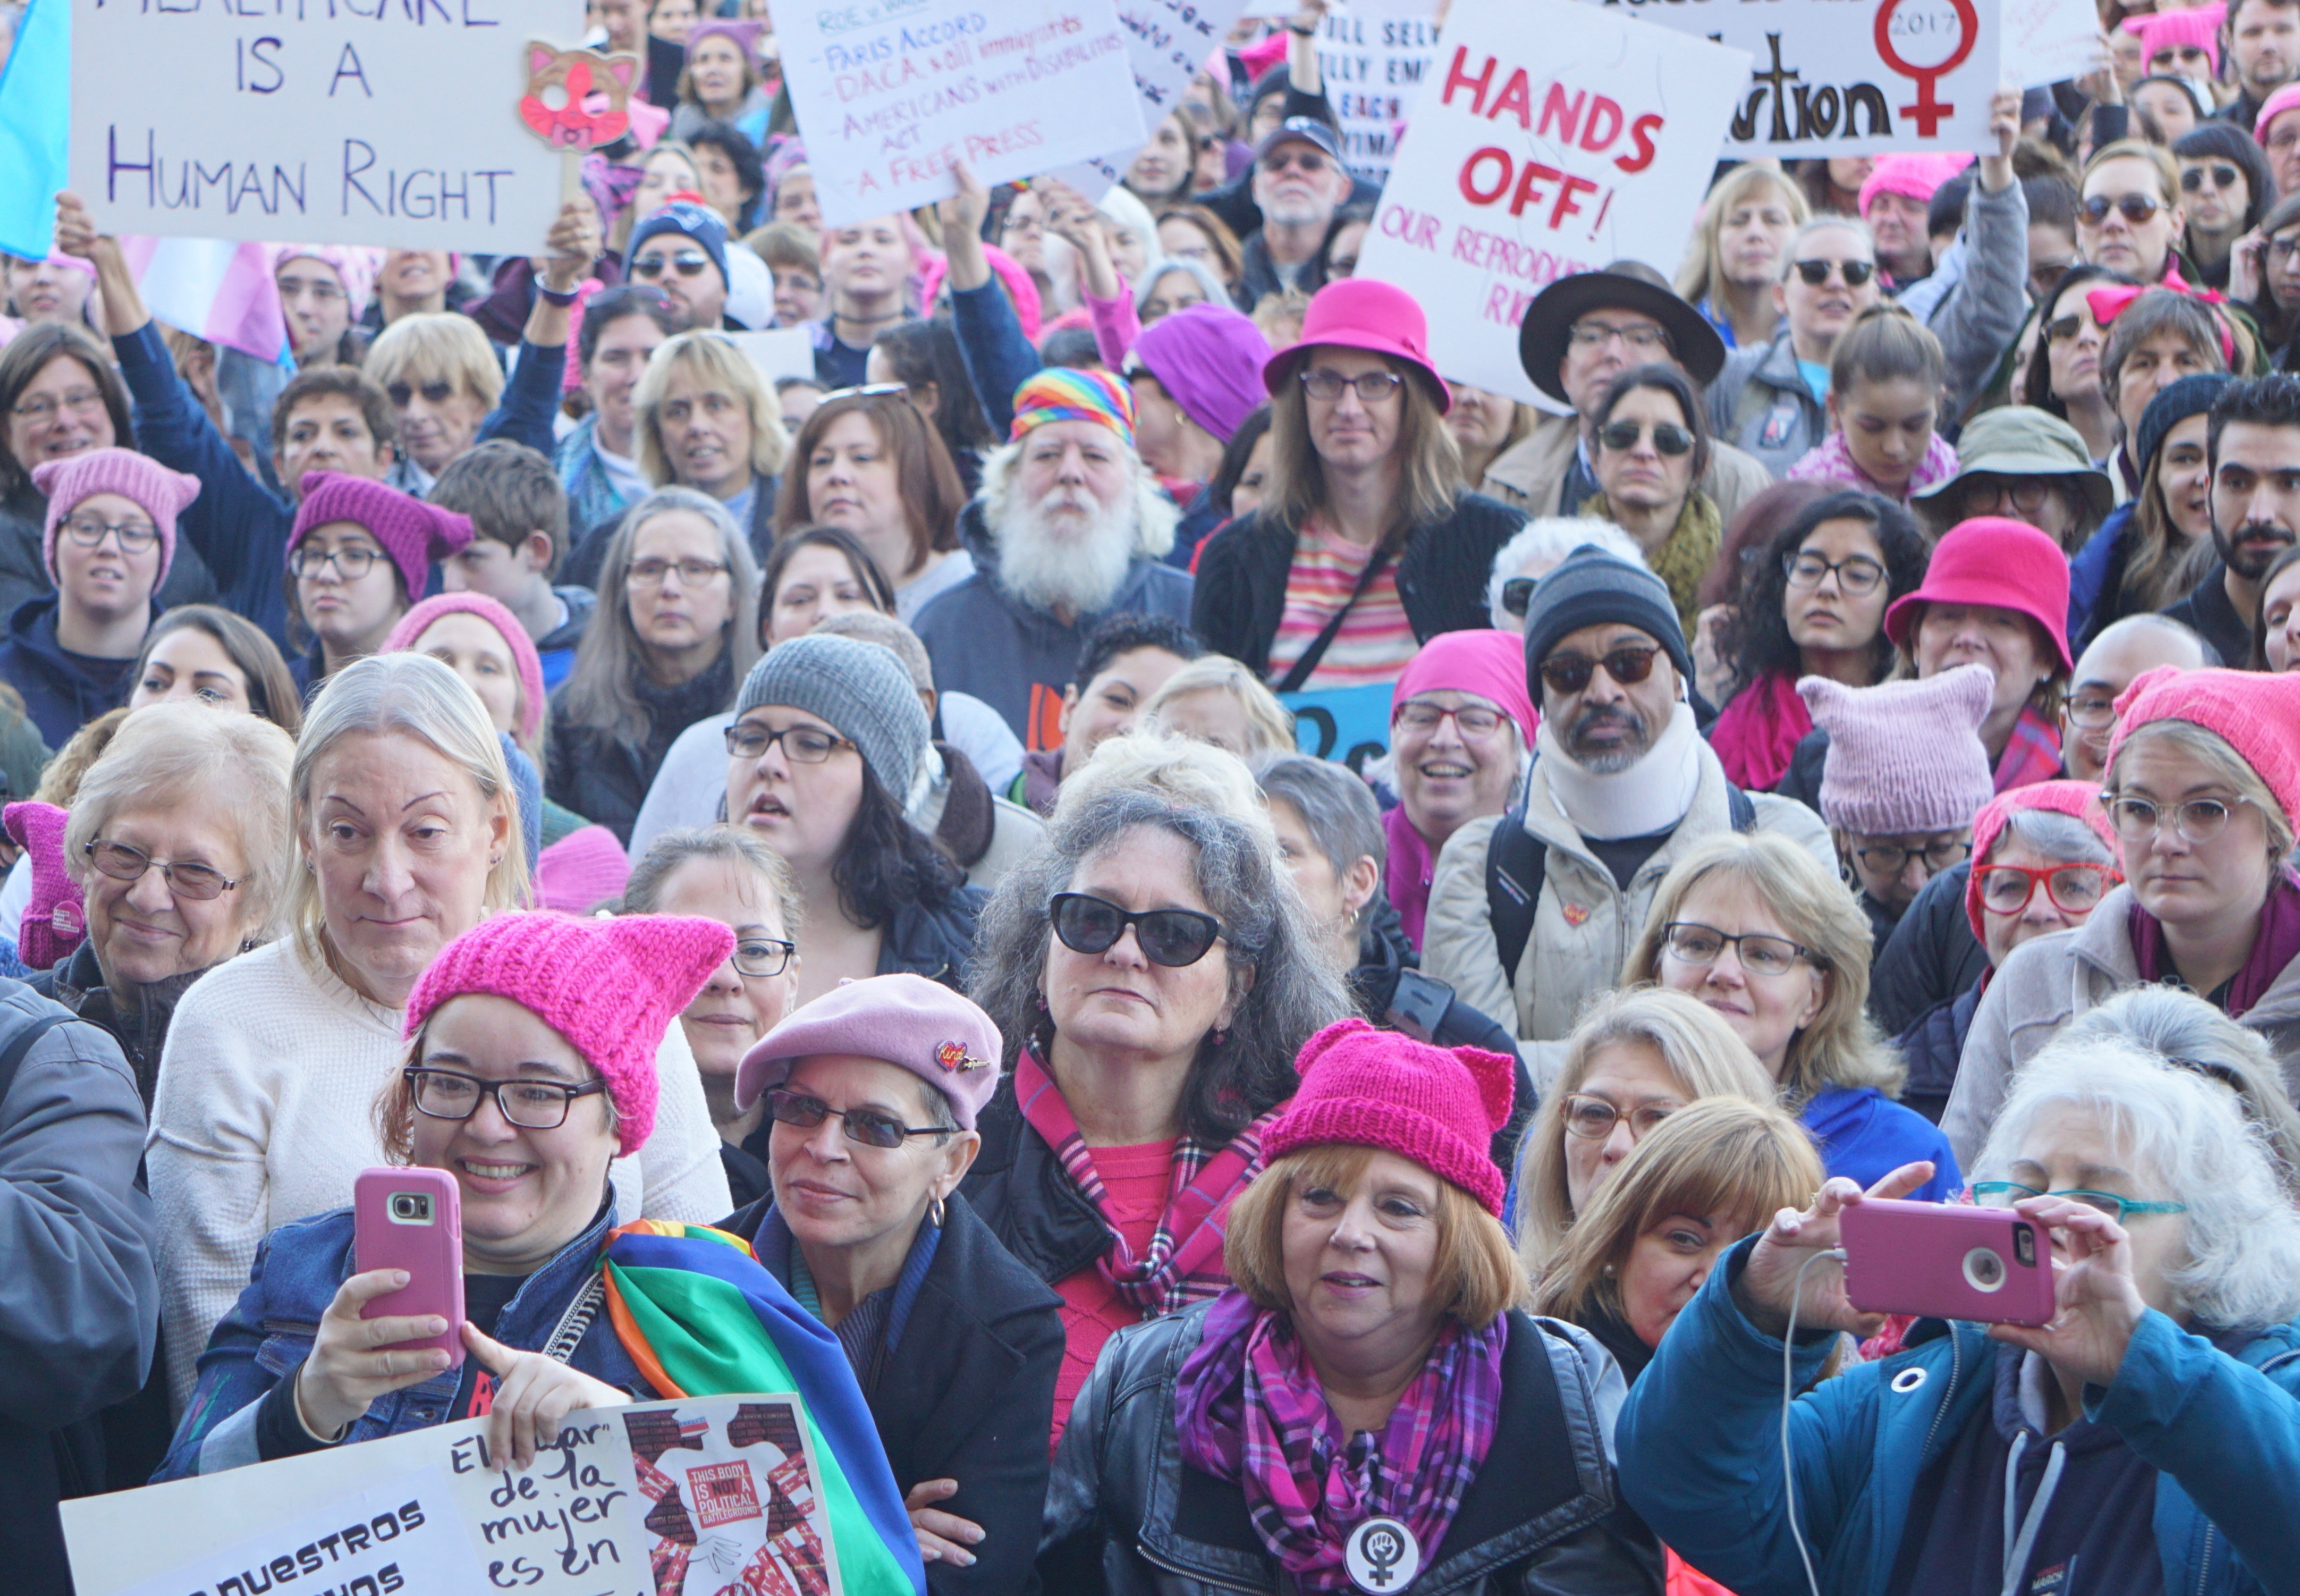 The protests in pictures: Marching in CT and the nation's capital